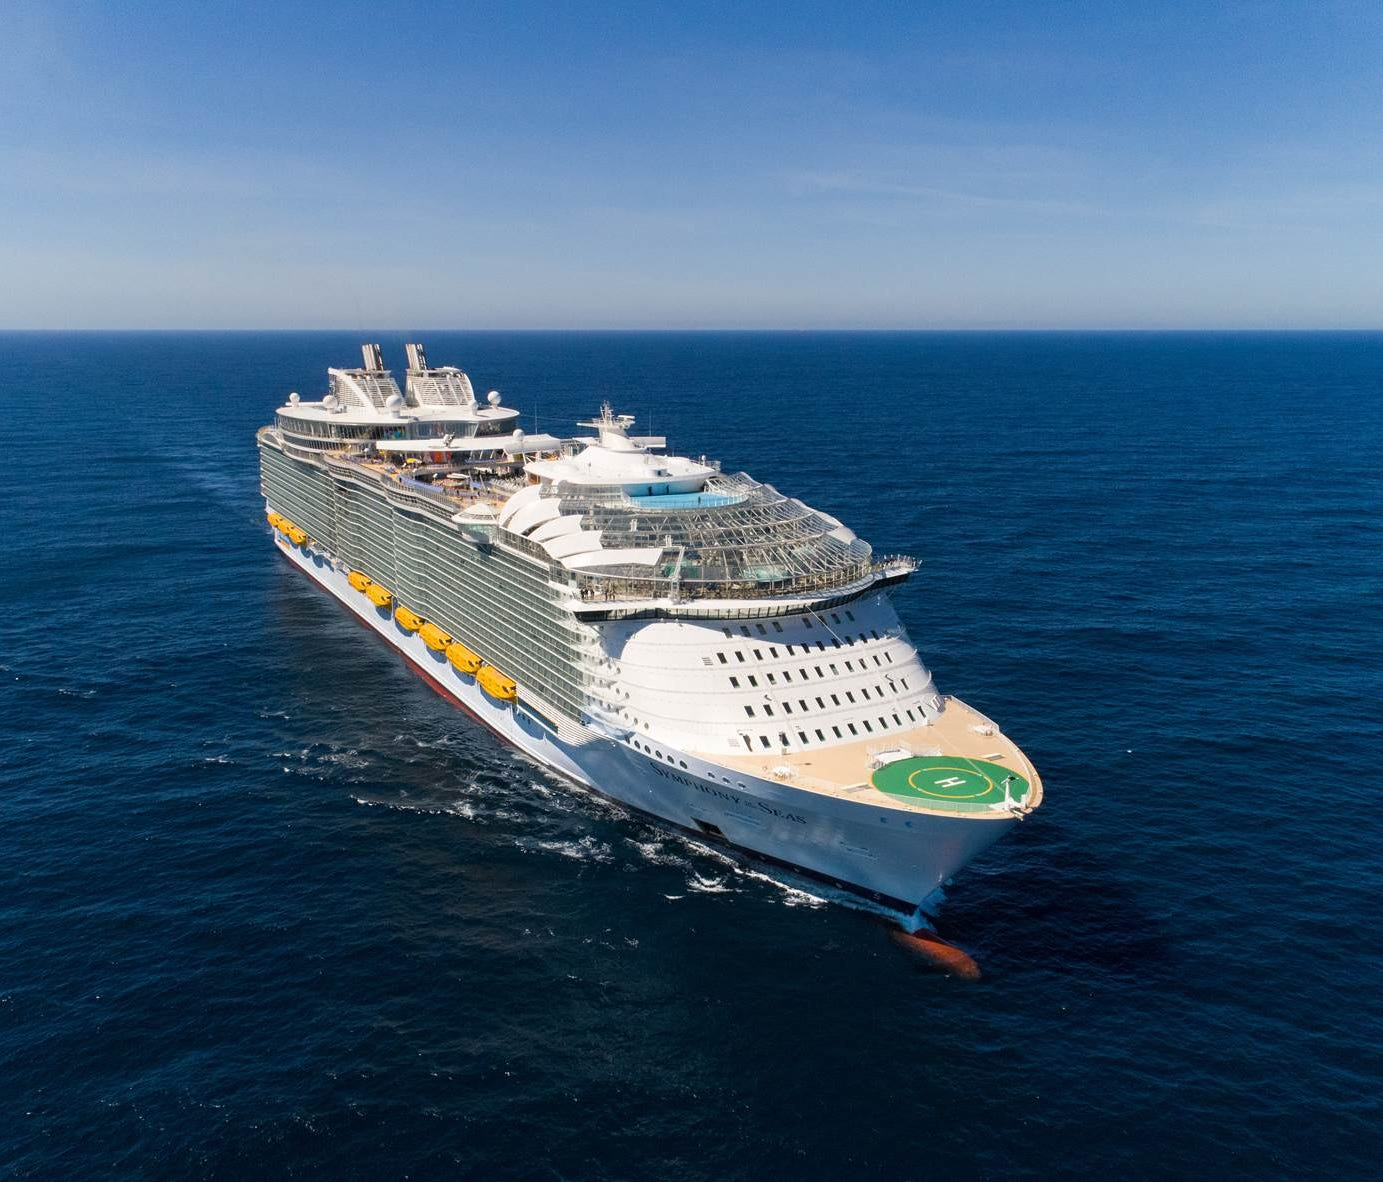 At 228,081 tons, Royal Caribbean's Symphony of the Seas is the biggest cruise ship in the world.